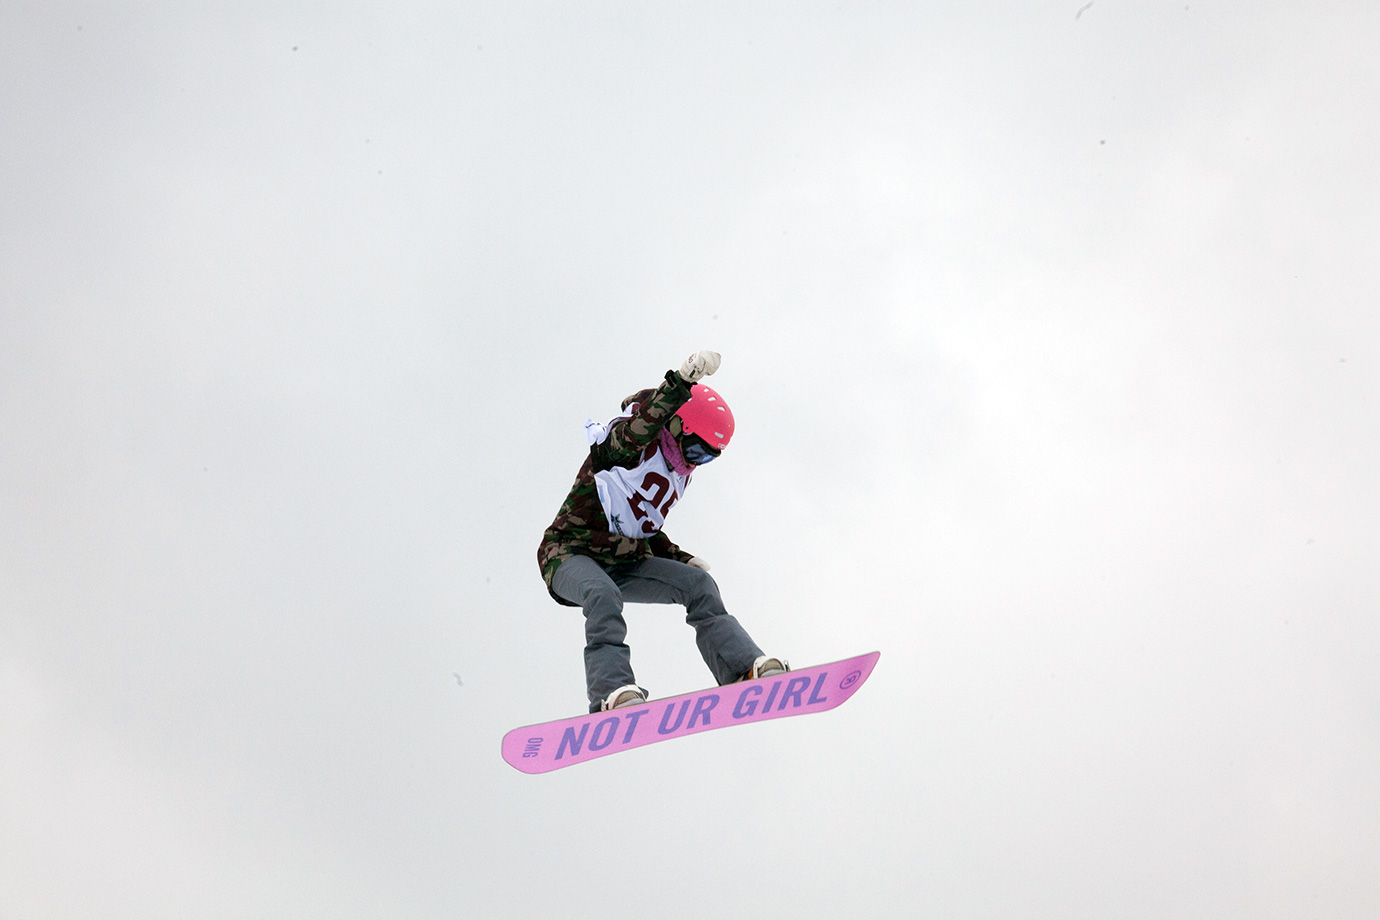 Just like this year's X Games Olso Big Air competition, the Big Air competition at Fenway was open to female snowboarders and skiers. The big air event was added to the women's World Cup and U.S. Grand Prix seasons in 2015.